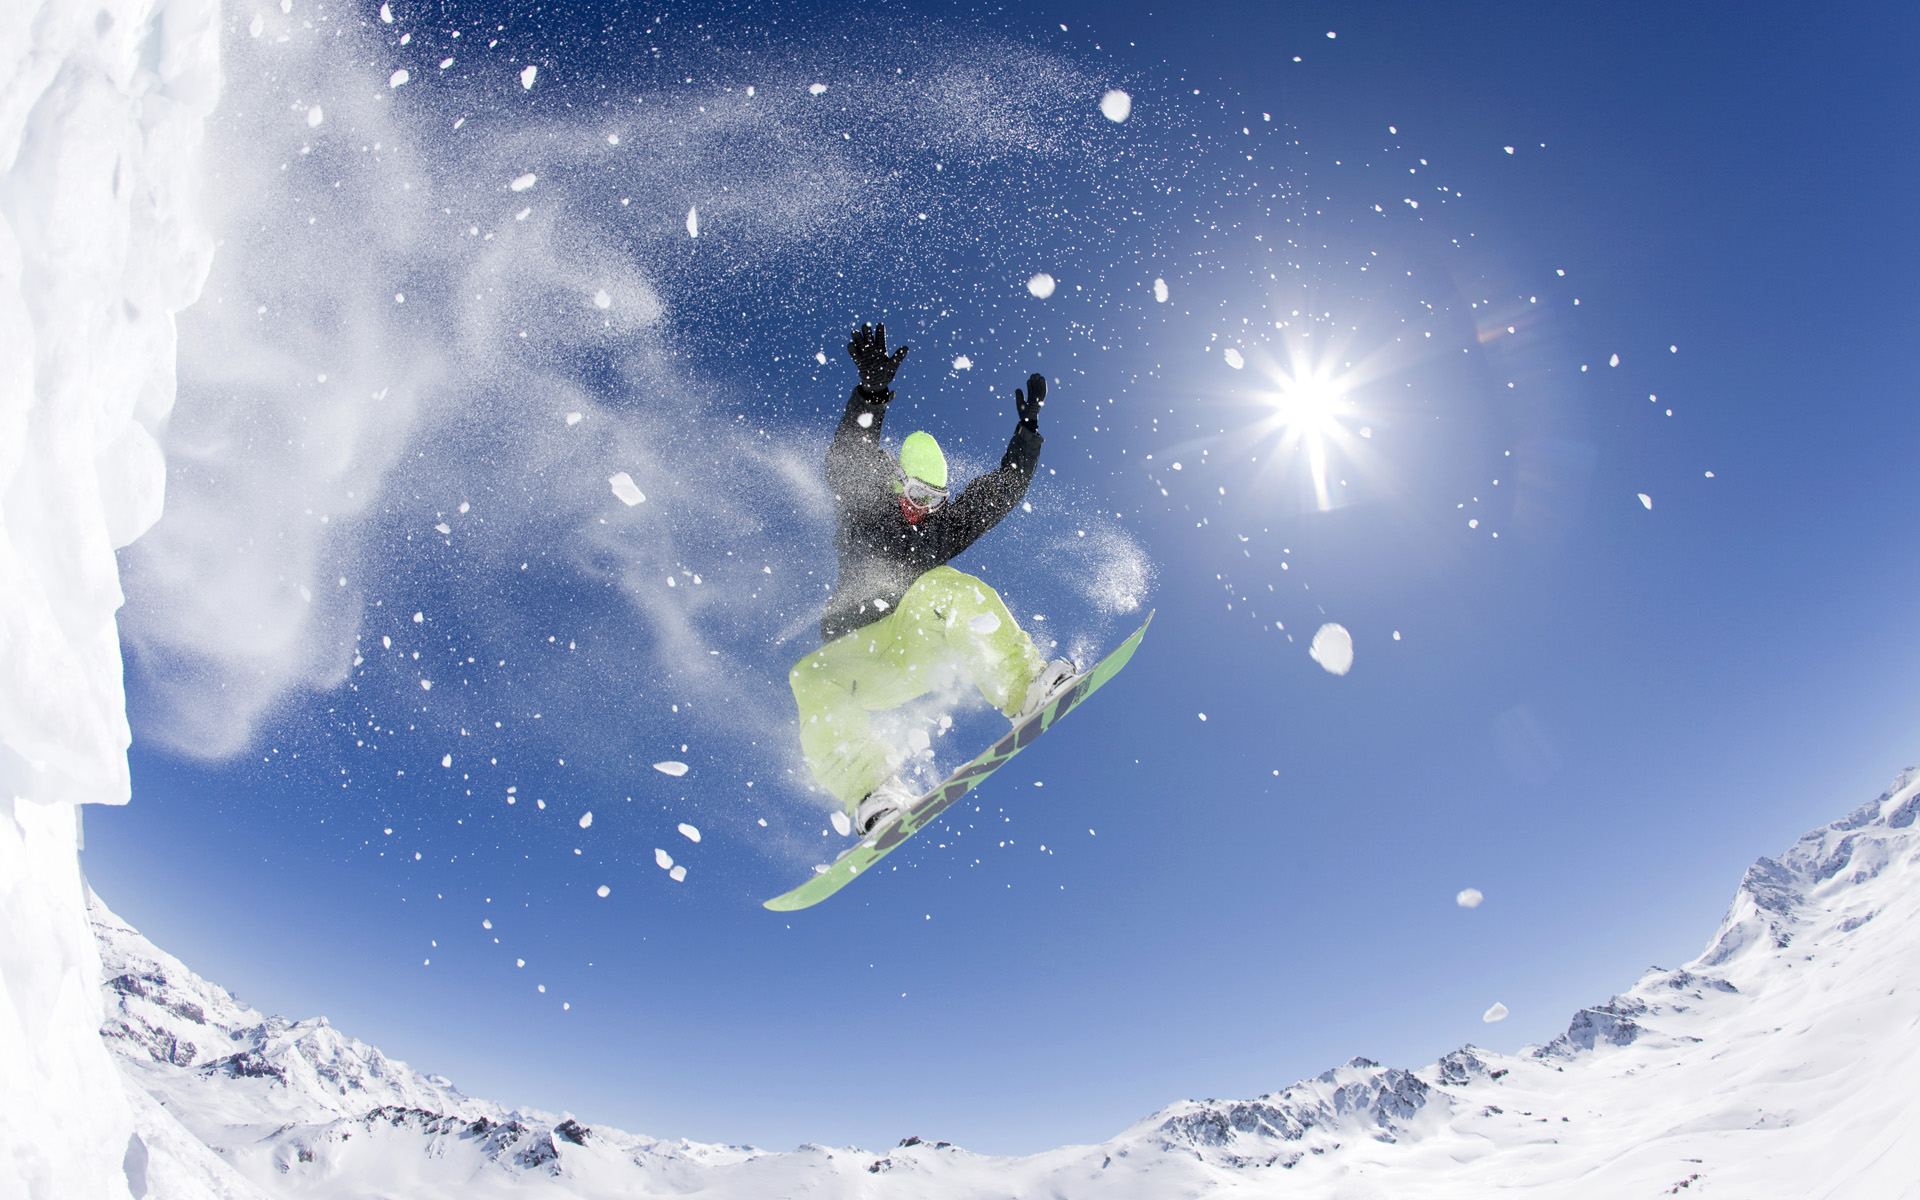 snowboarding images snowboarding hd wallpaper and background photos